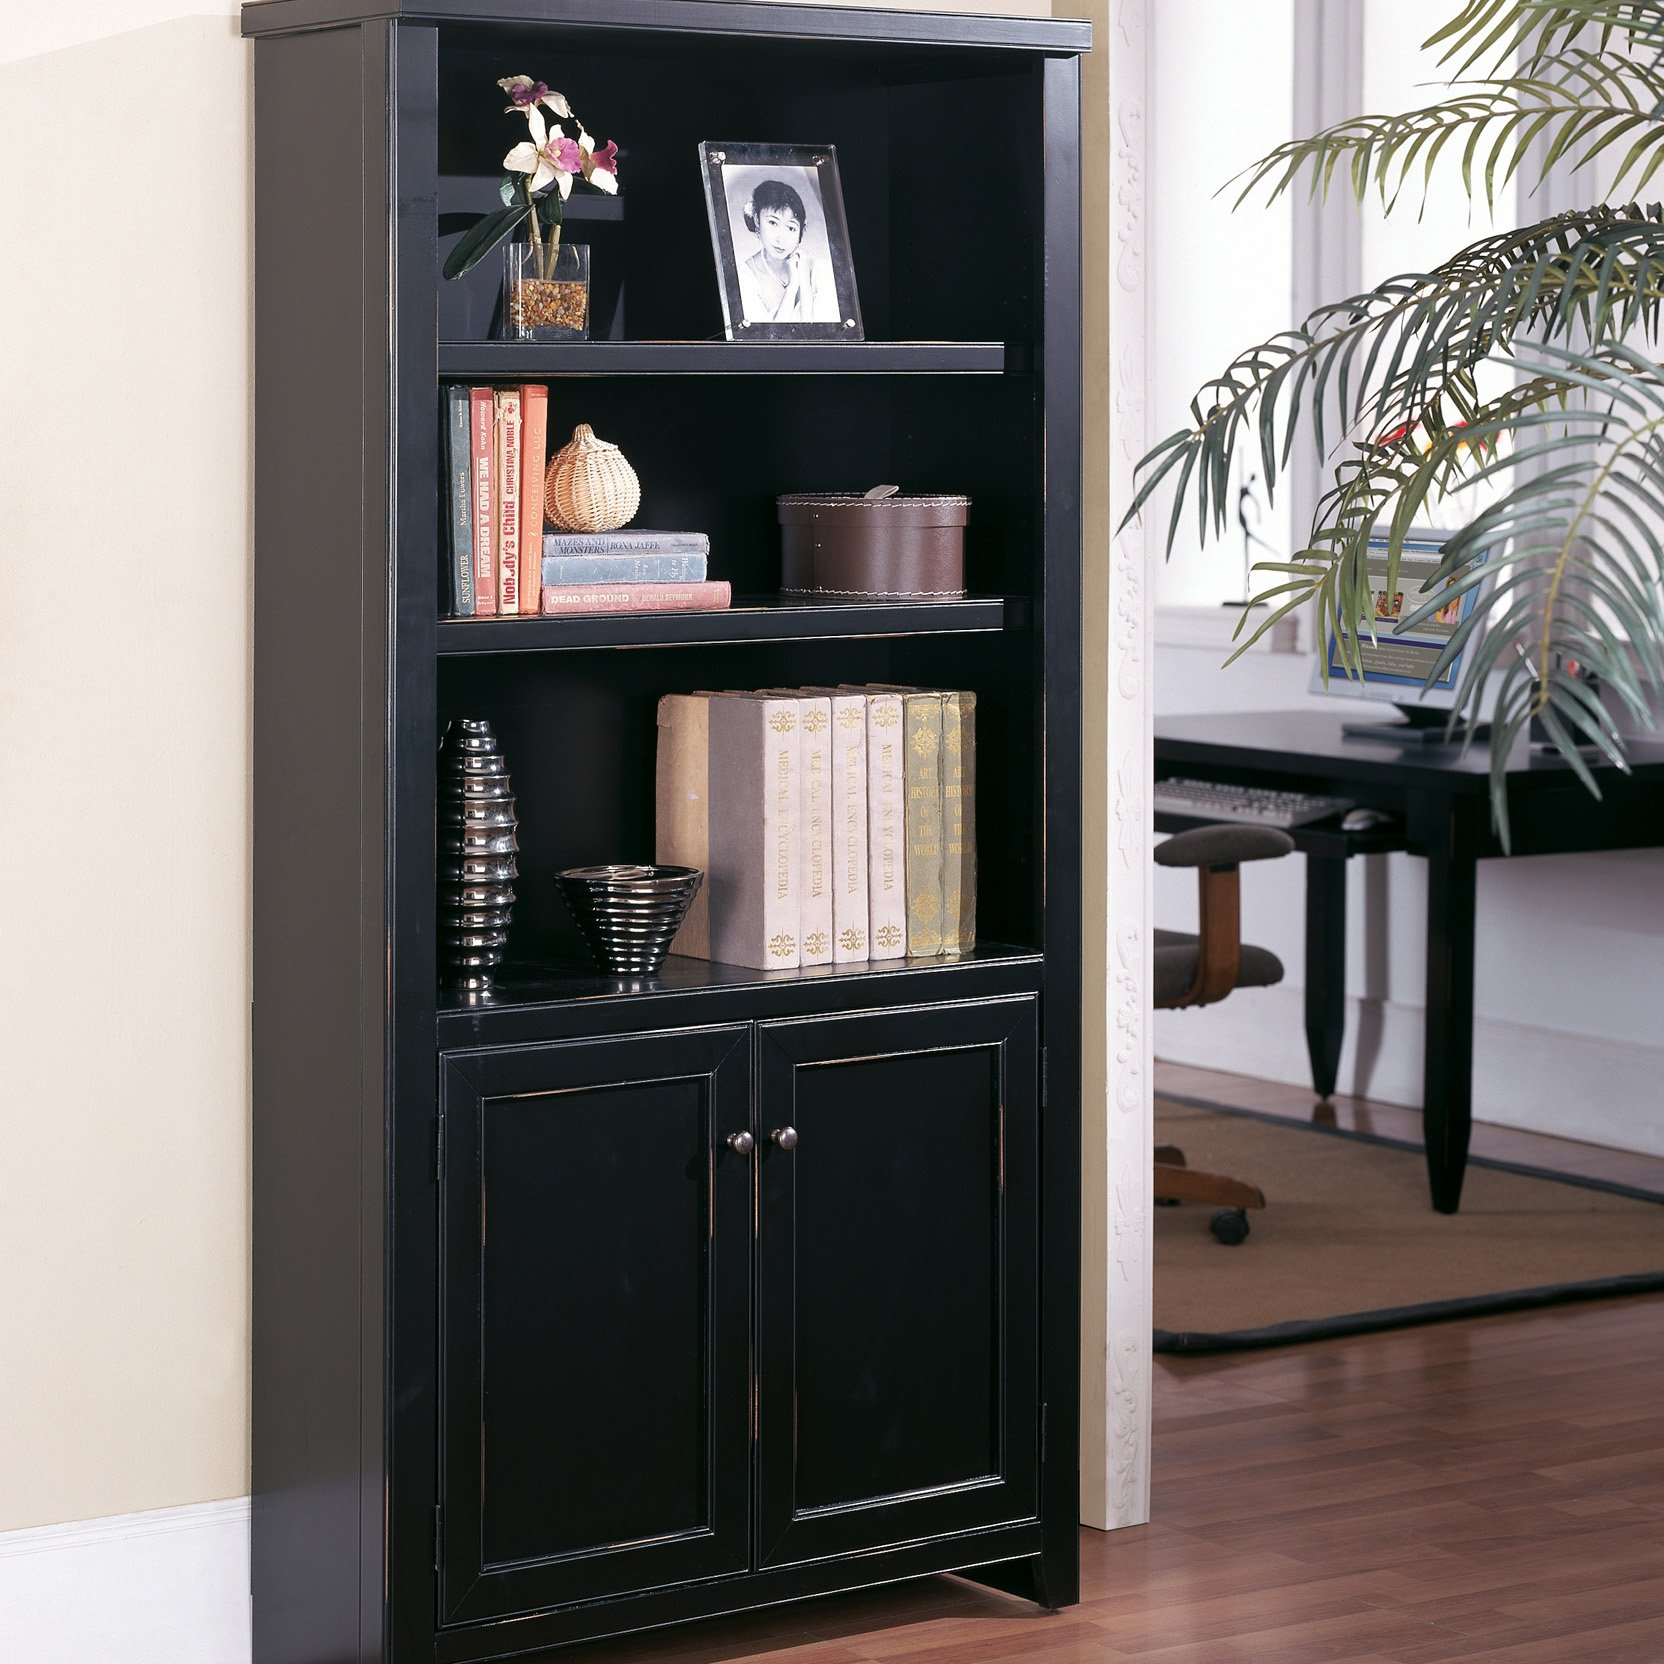 Image of: Top Bookcases with Doors